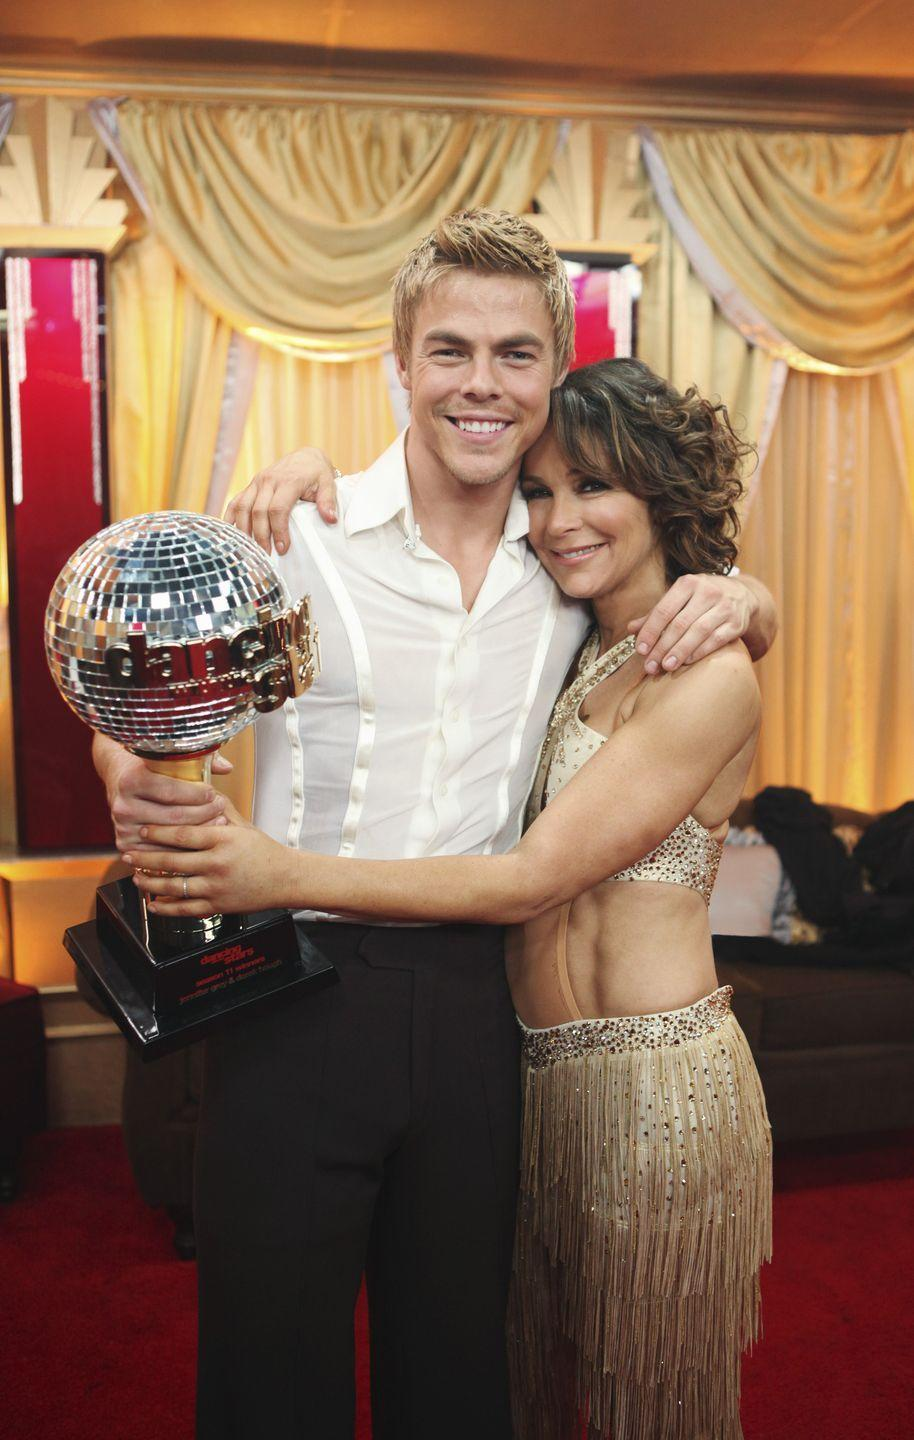 "<p>The <em>Dirty Dancing</em> actress barely missed a step en route to the Mirrorball Trophy. However, Jennifer ruptured a disc in her lower back the night before the season 11 finale, per <em><a href=""https://www.cbsnews.com/news/jennifer-grey-fought-cancer-spinal-cord-injury-to-win-dancing-with-the-stars/"" rel=""nofollow noopener"" target=""_blank"" data-ylk=""slk:CBS"" class=""link rapid-noclick-resp"">CBS</a></em>. Nobody puts baby in the corner, and that didn't hold her back from hoisting the trophy with pro partner Derek Hough. She later underwent surgery to remove the fragment following the competition. </p>"